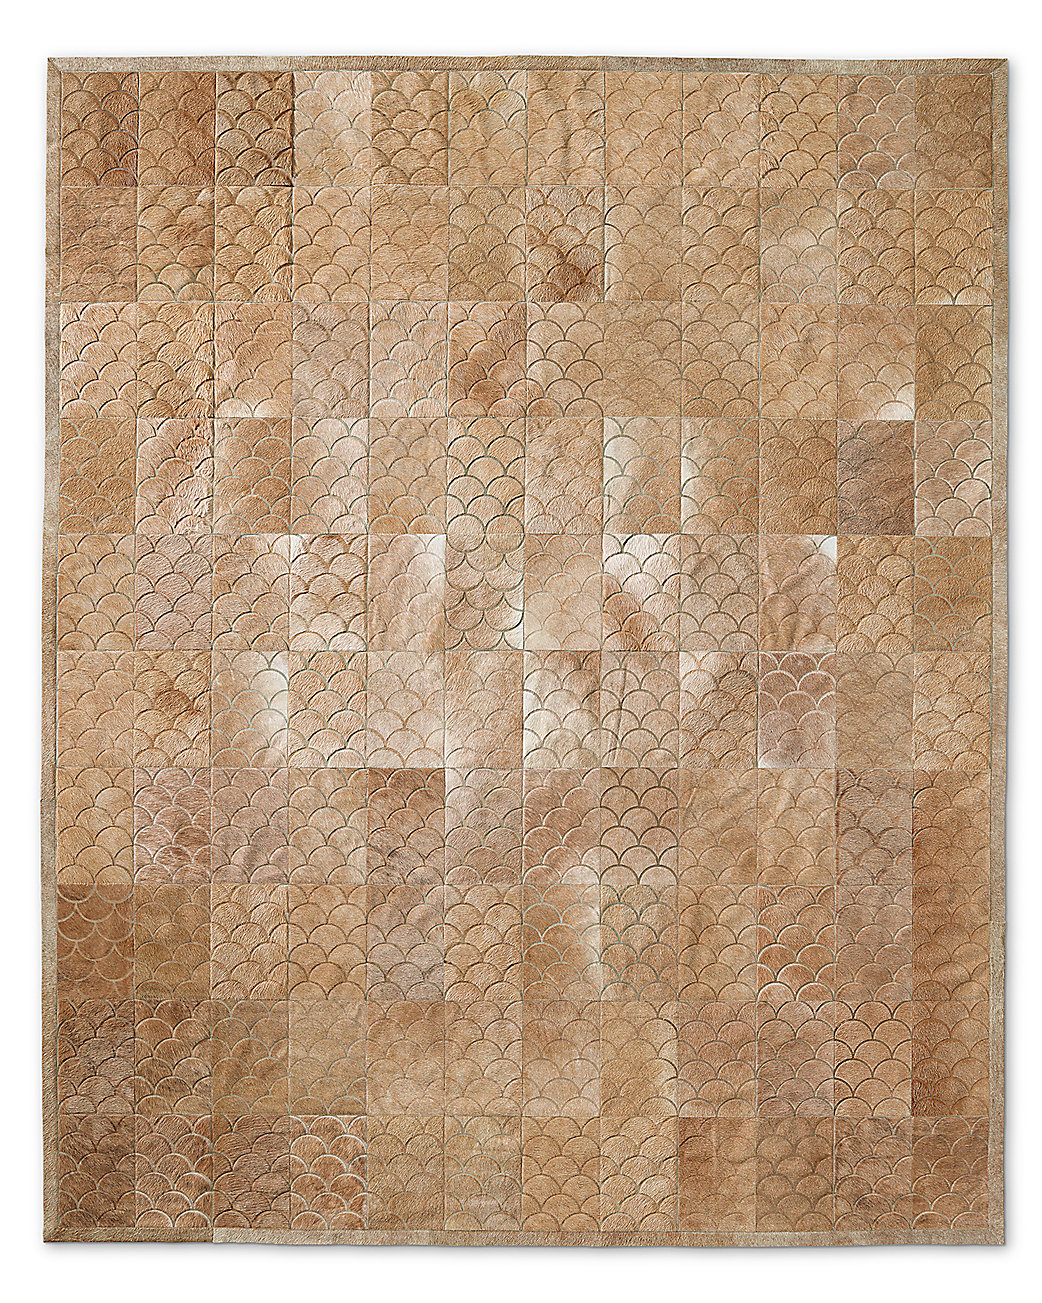 Etched Scallop Cowhide Rug - Sand